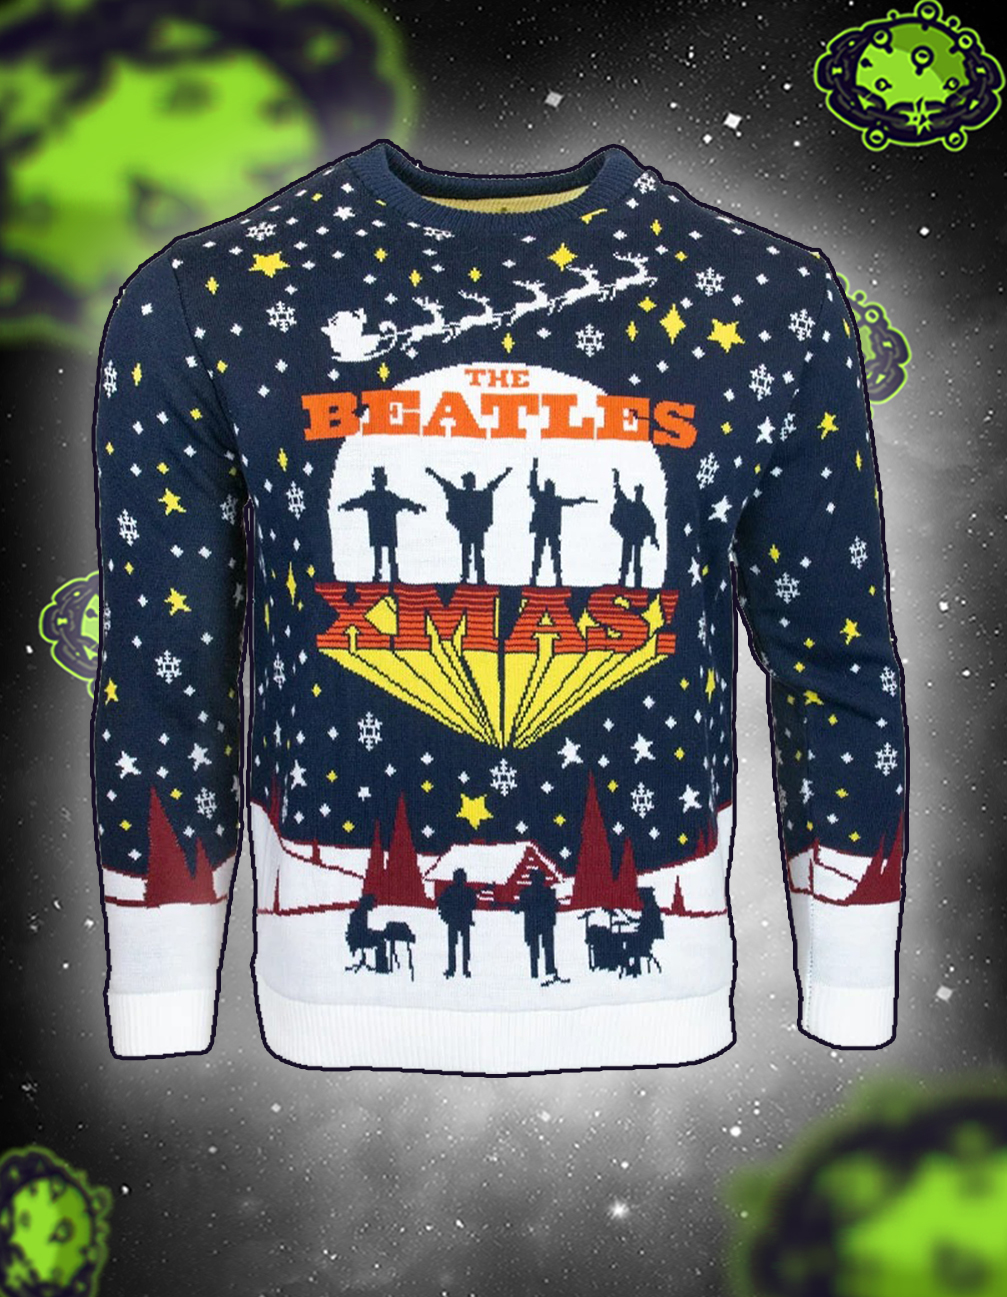 The beatles xmas jumper and ugly sweater